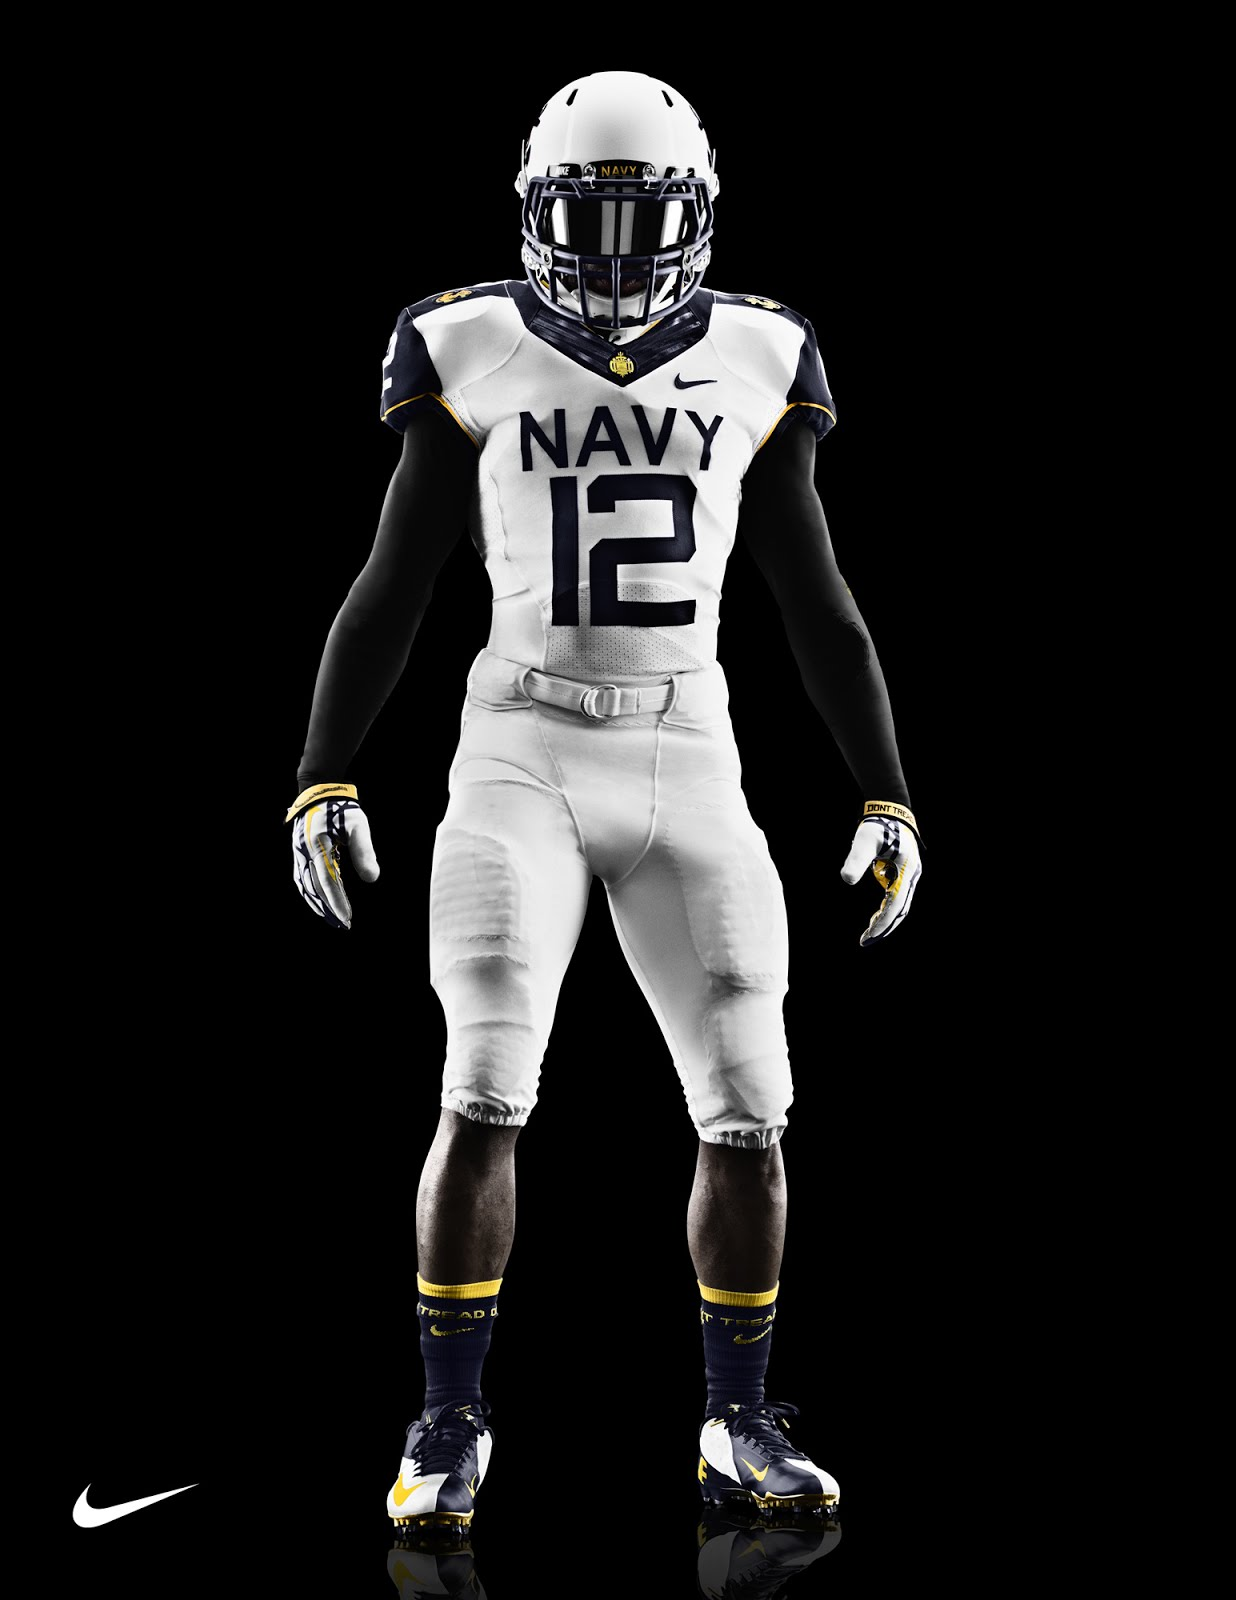 army and navy football uniforms nike 6 the just revealed army and navy ...